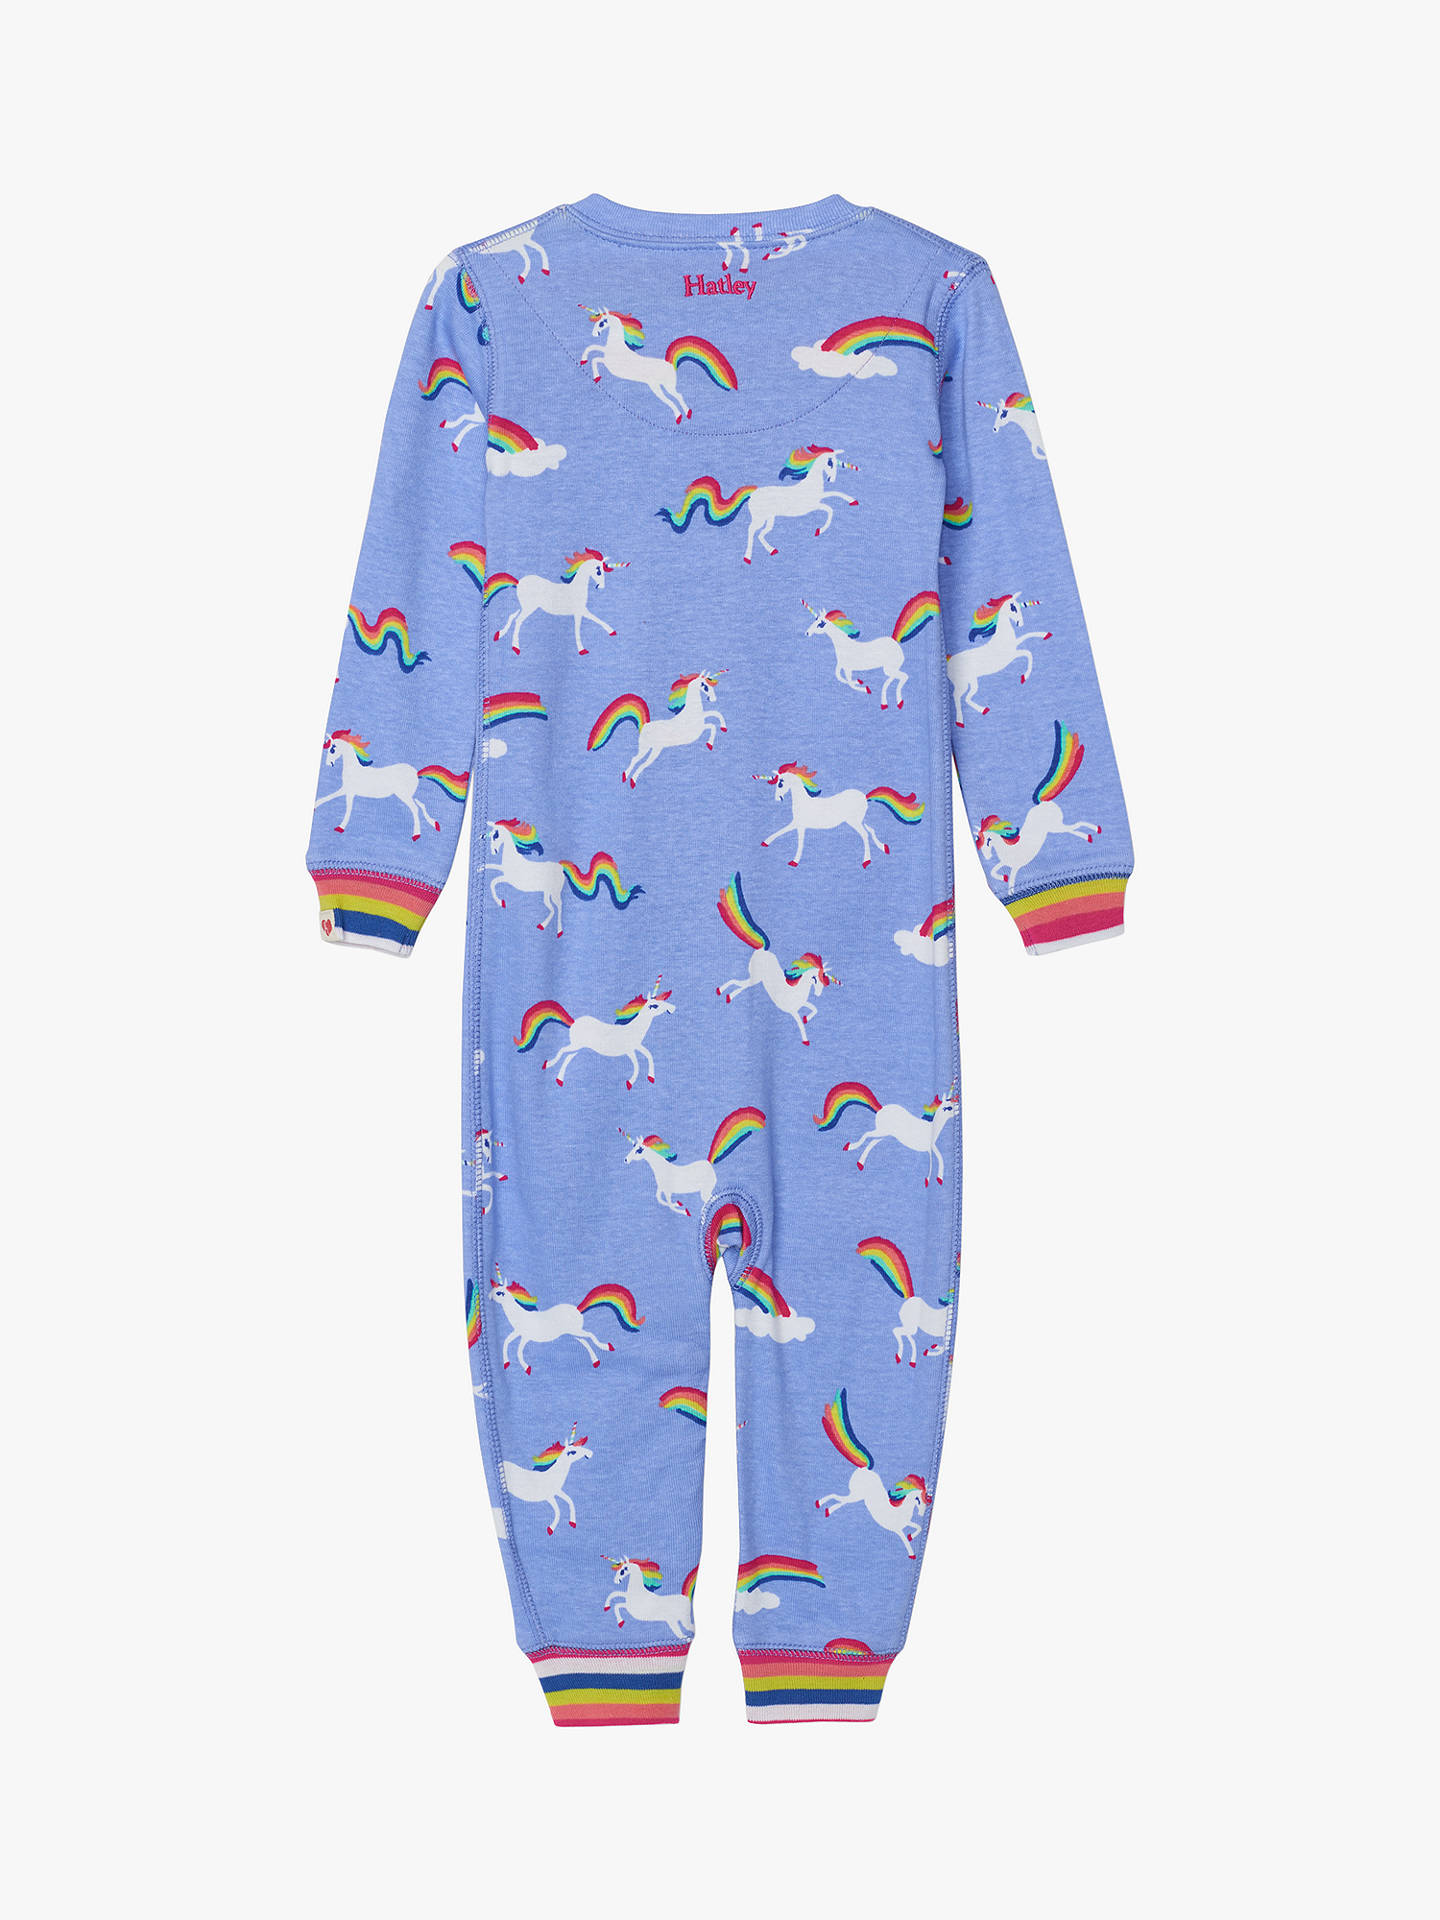 Buy Hatley Baby Organic Cotton Unicorn Stripe Sleepsuit, Purple, 9-12 months Online at johnlewis.com